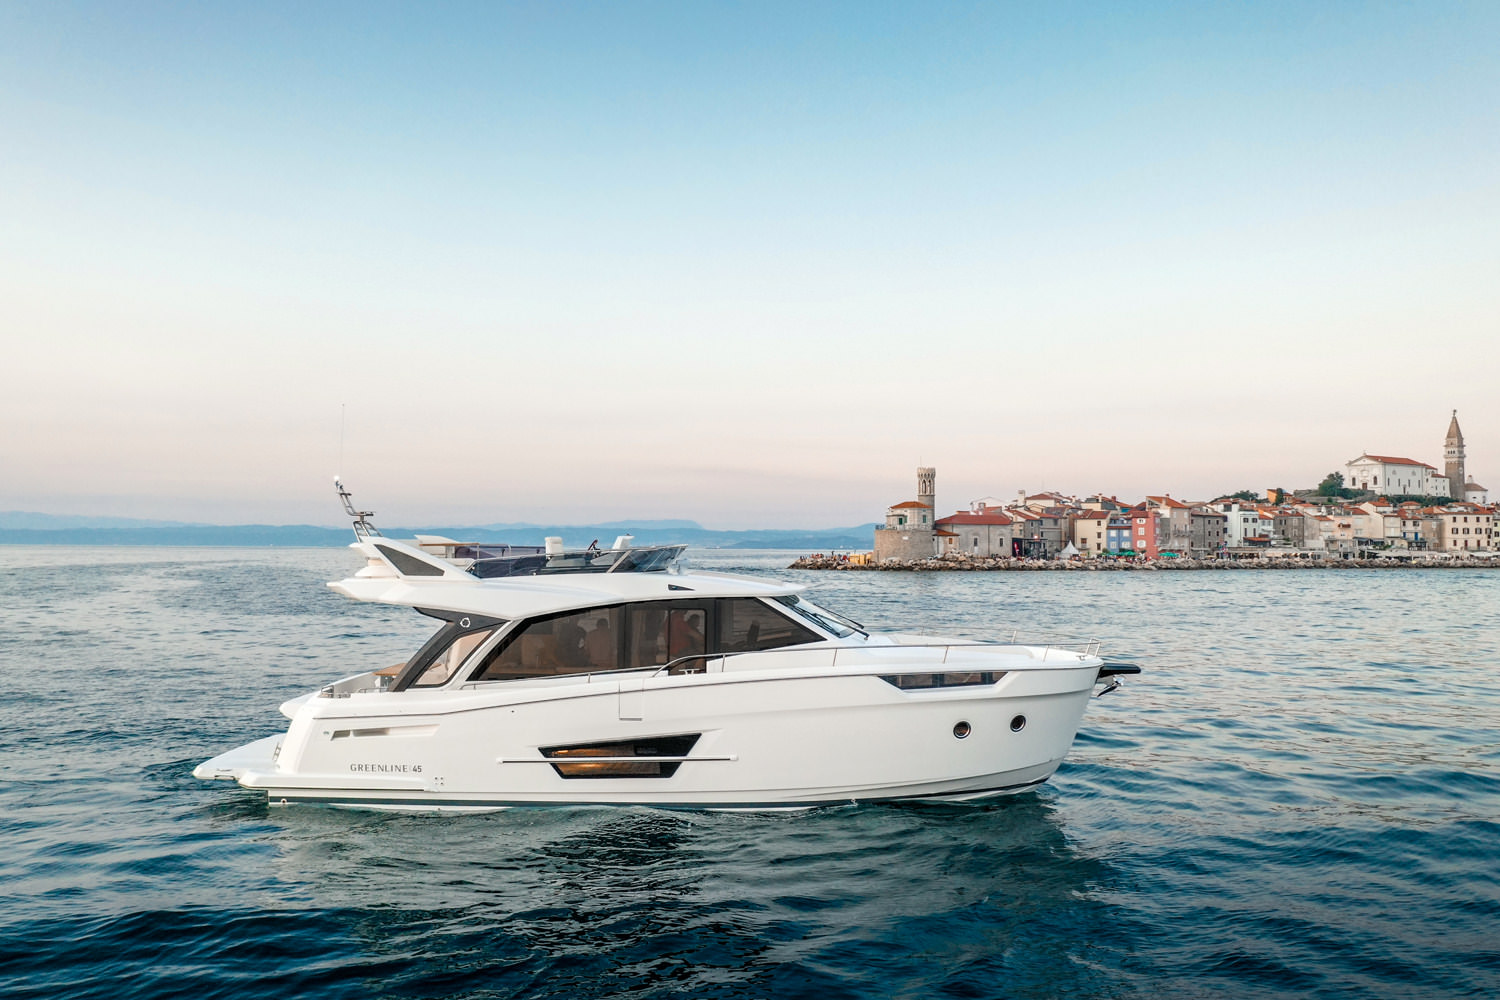 greenline_yachts_45fly-12